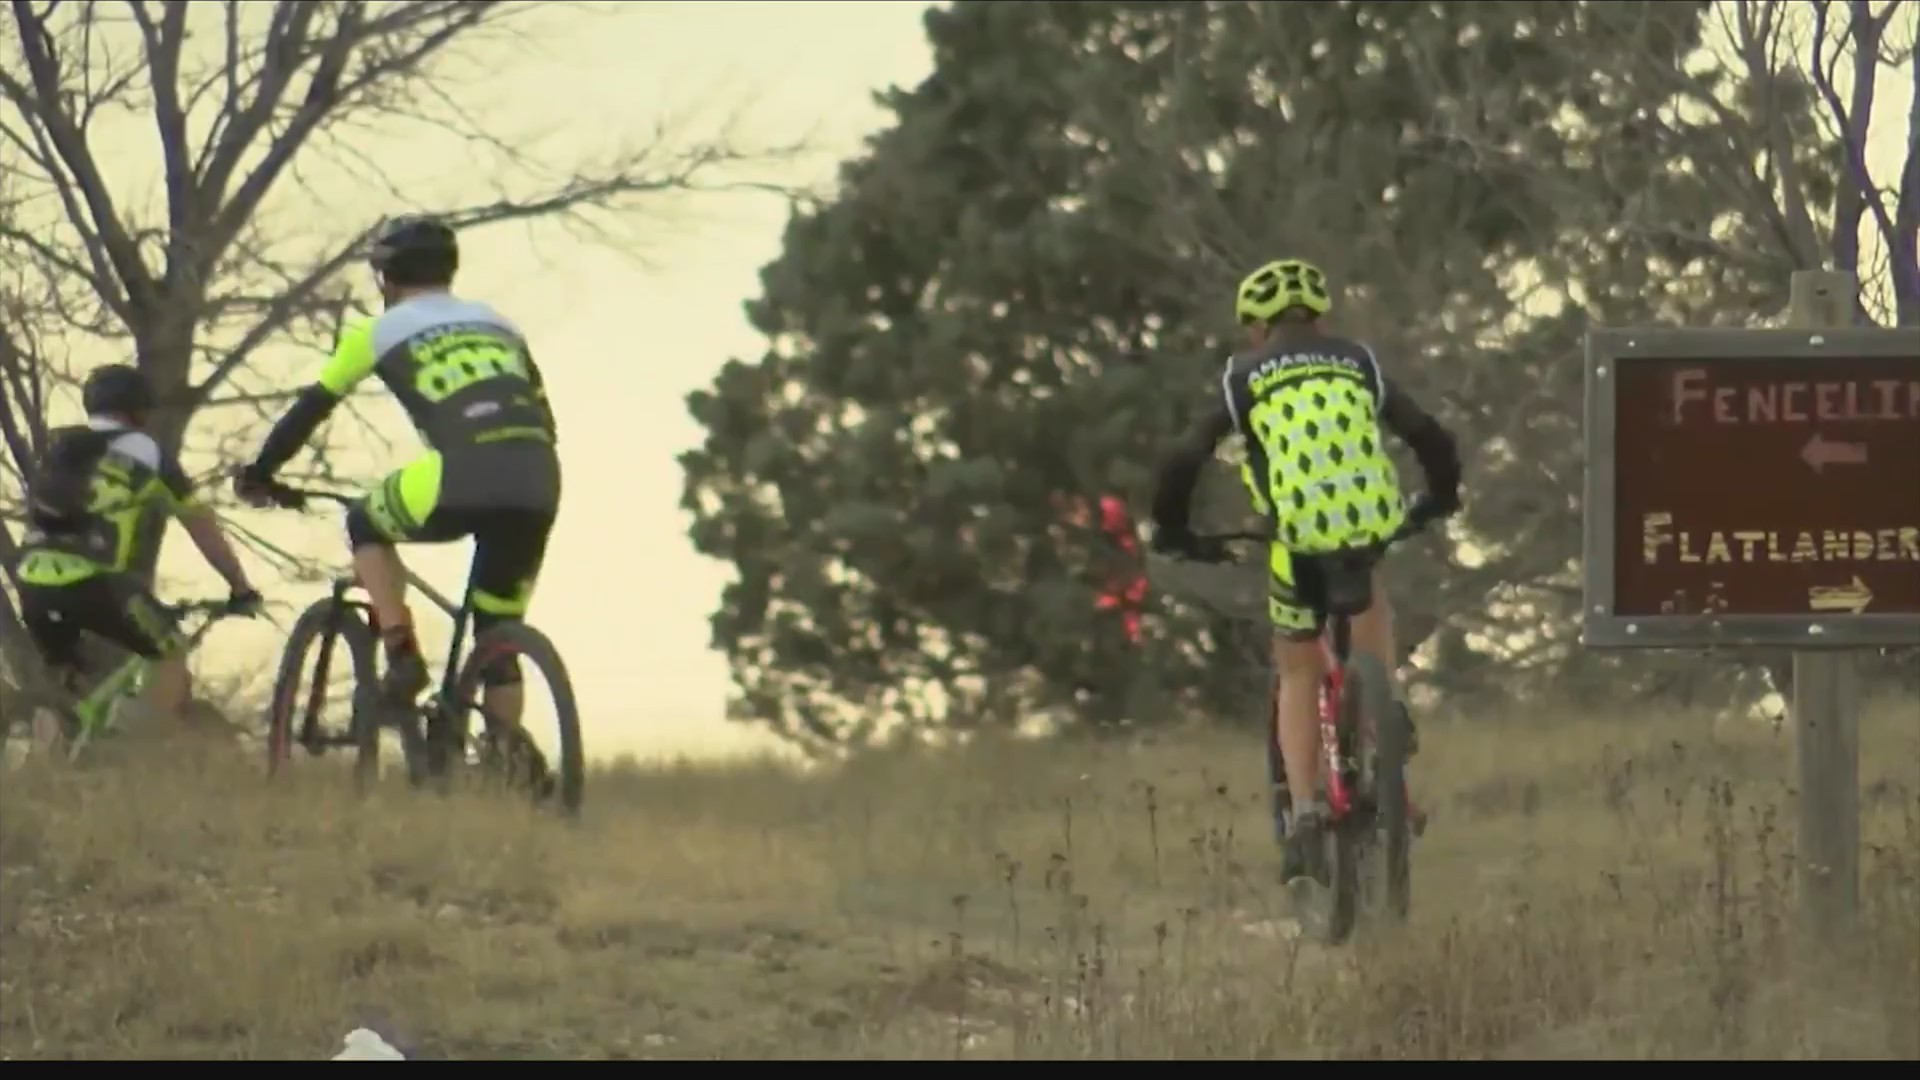 Local Team Encourages Cycling for Sport